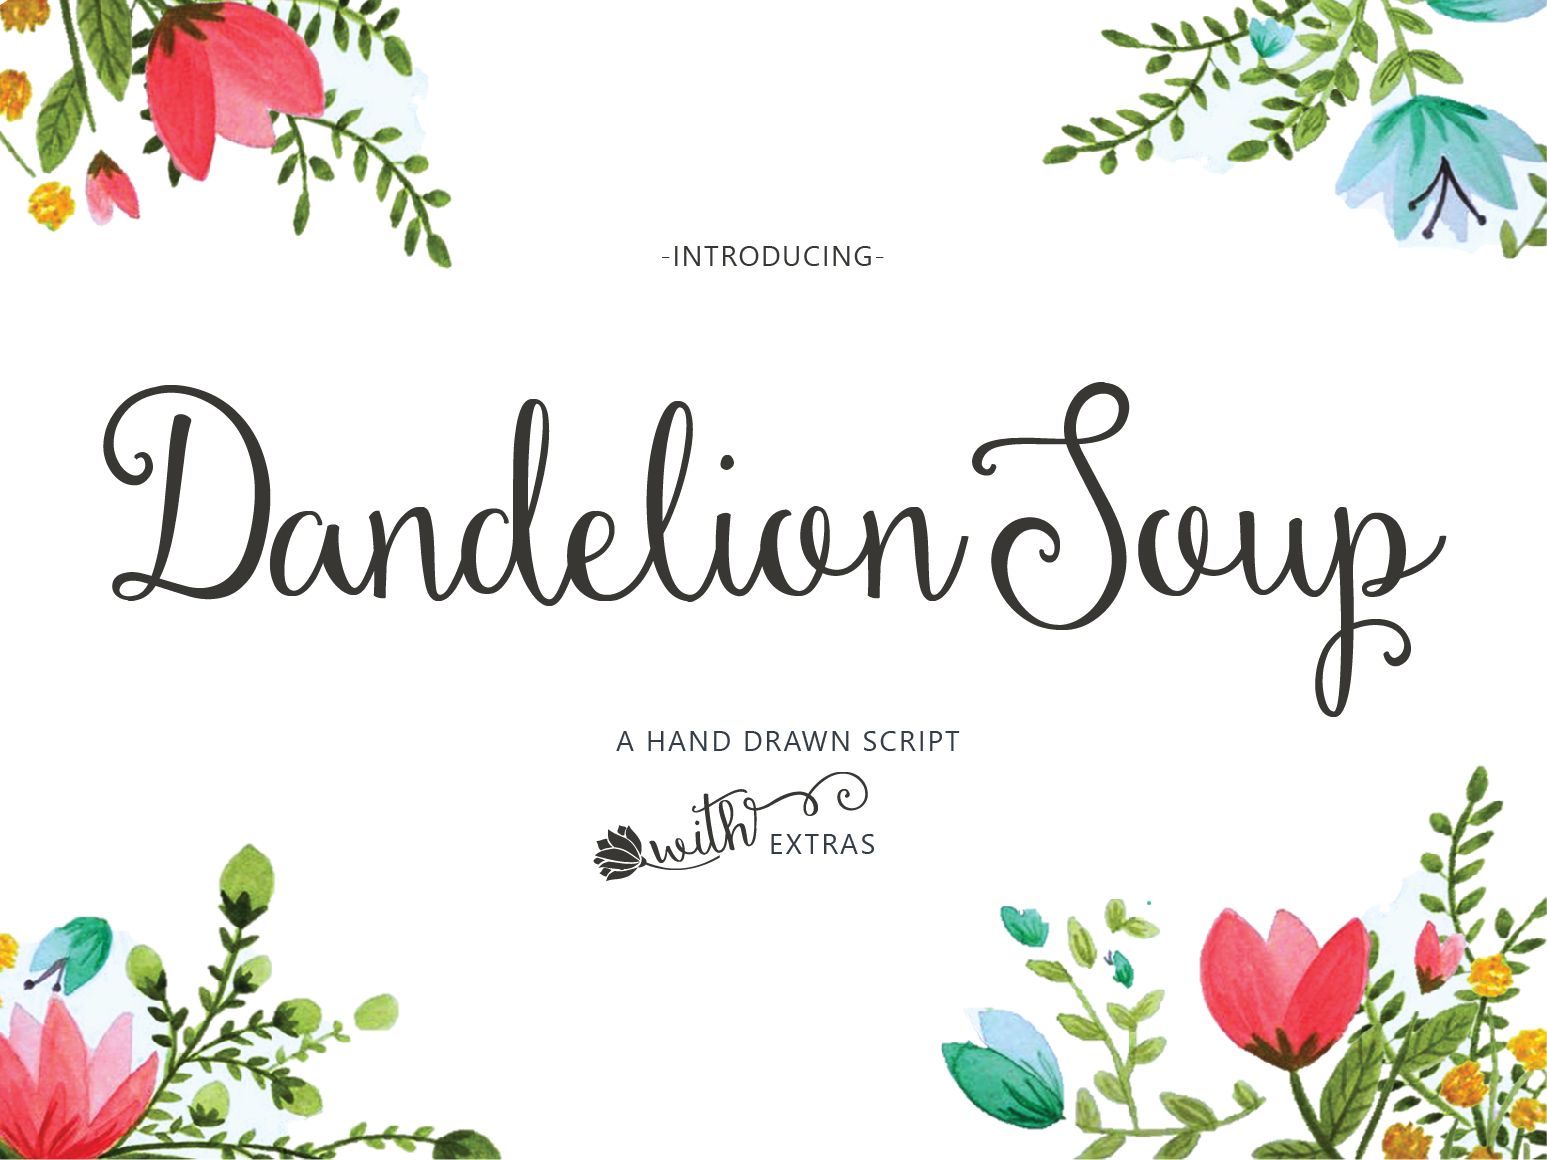 Dandelion Soup + Ornaments example image 1